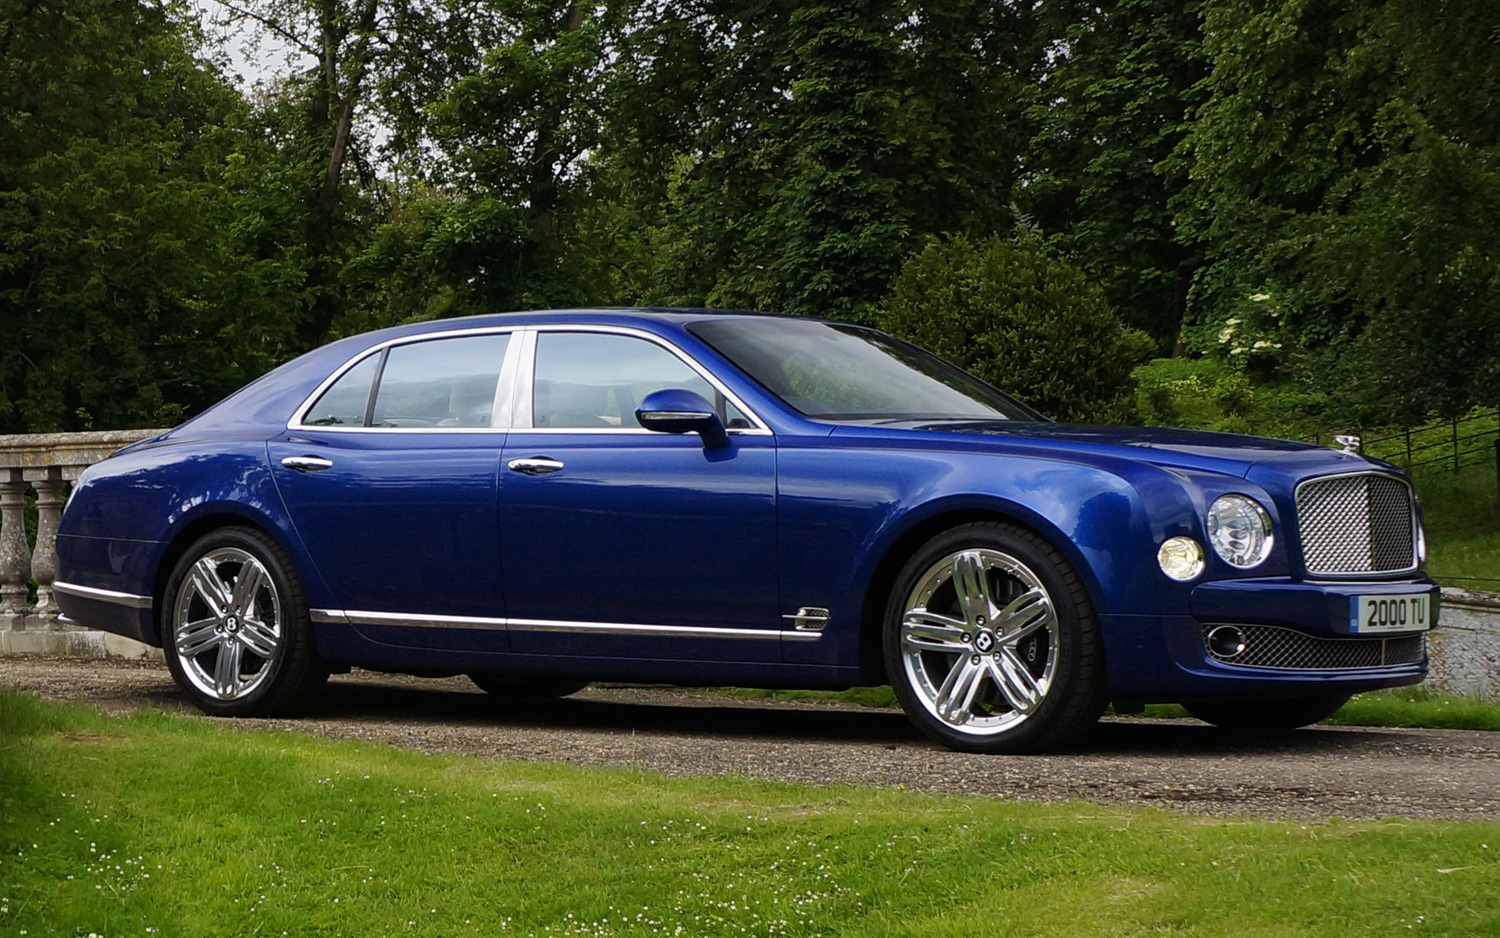 queens queen bentley mulsanne british sale just auto trader for price s up goes on